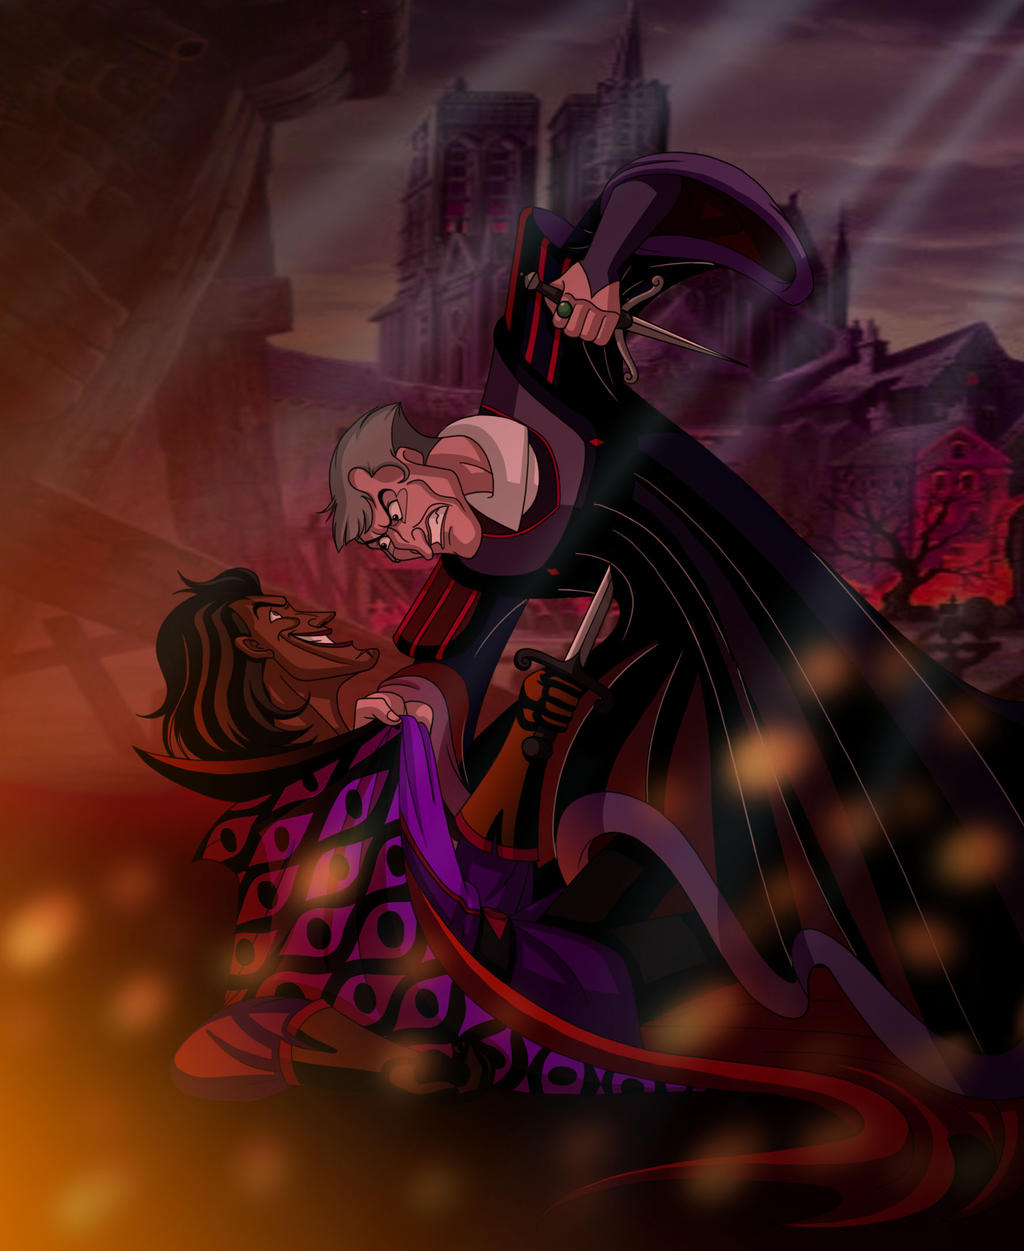 Frollo Vs Sarousch By WhiteFangKakashi300 On DeviantArt